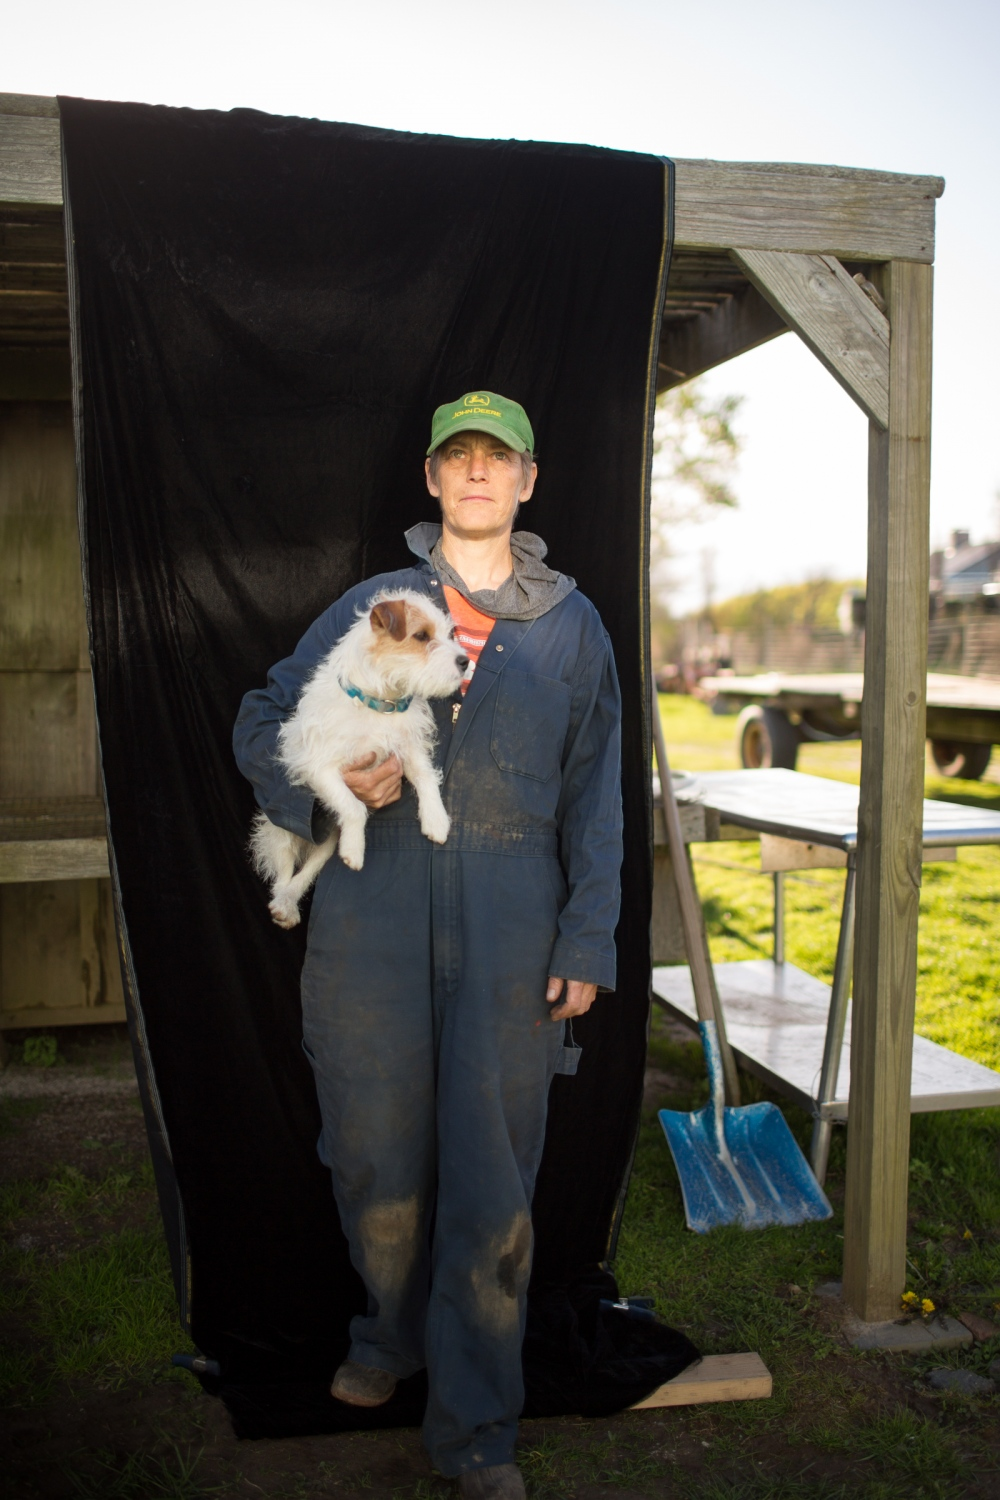 Marilee Foster of Foster Farm in Sagaponack, poses with her dog, Bird